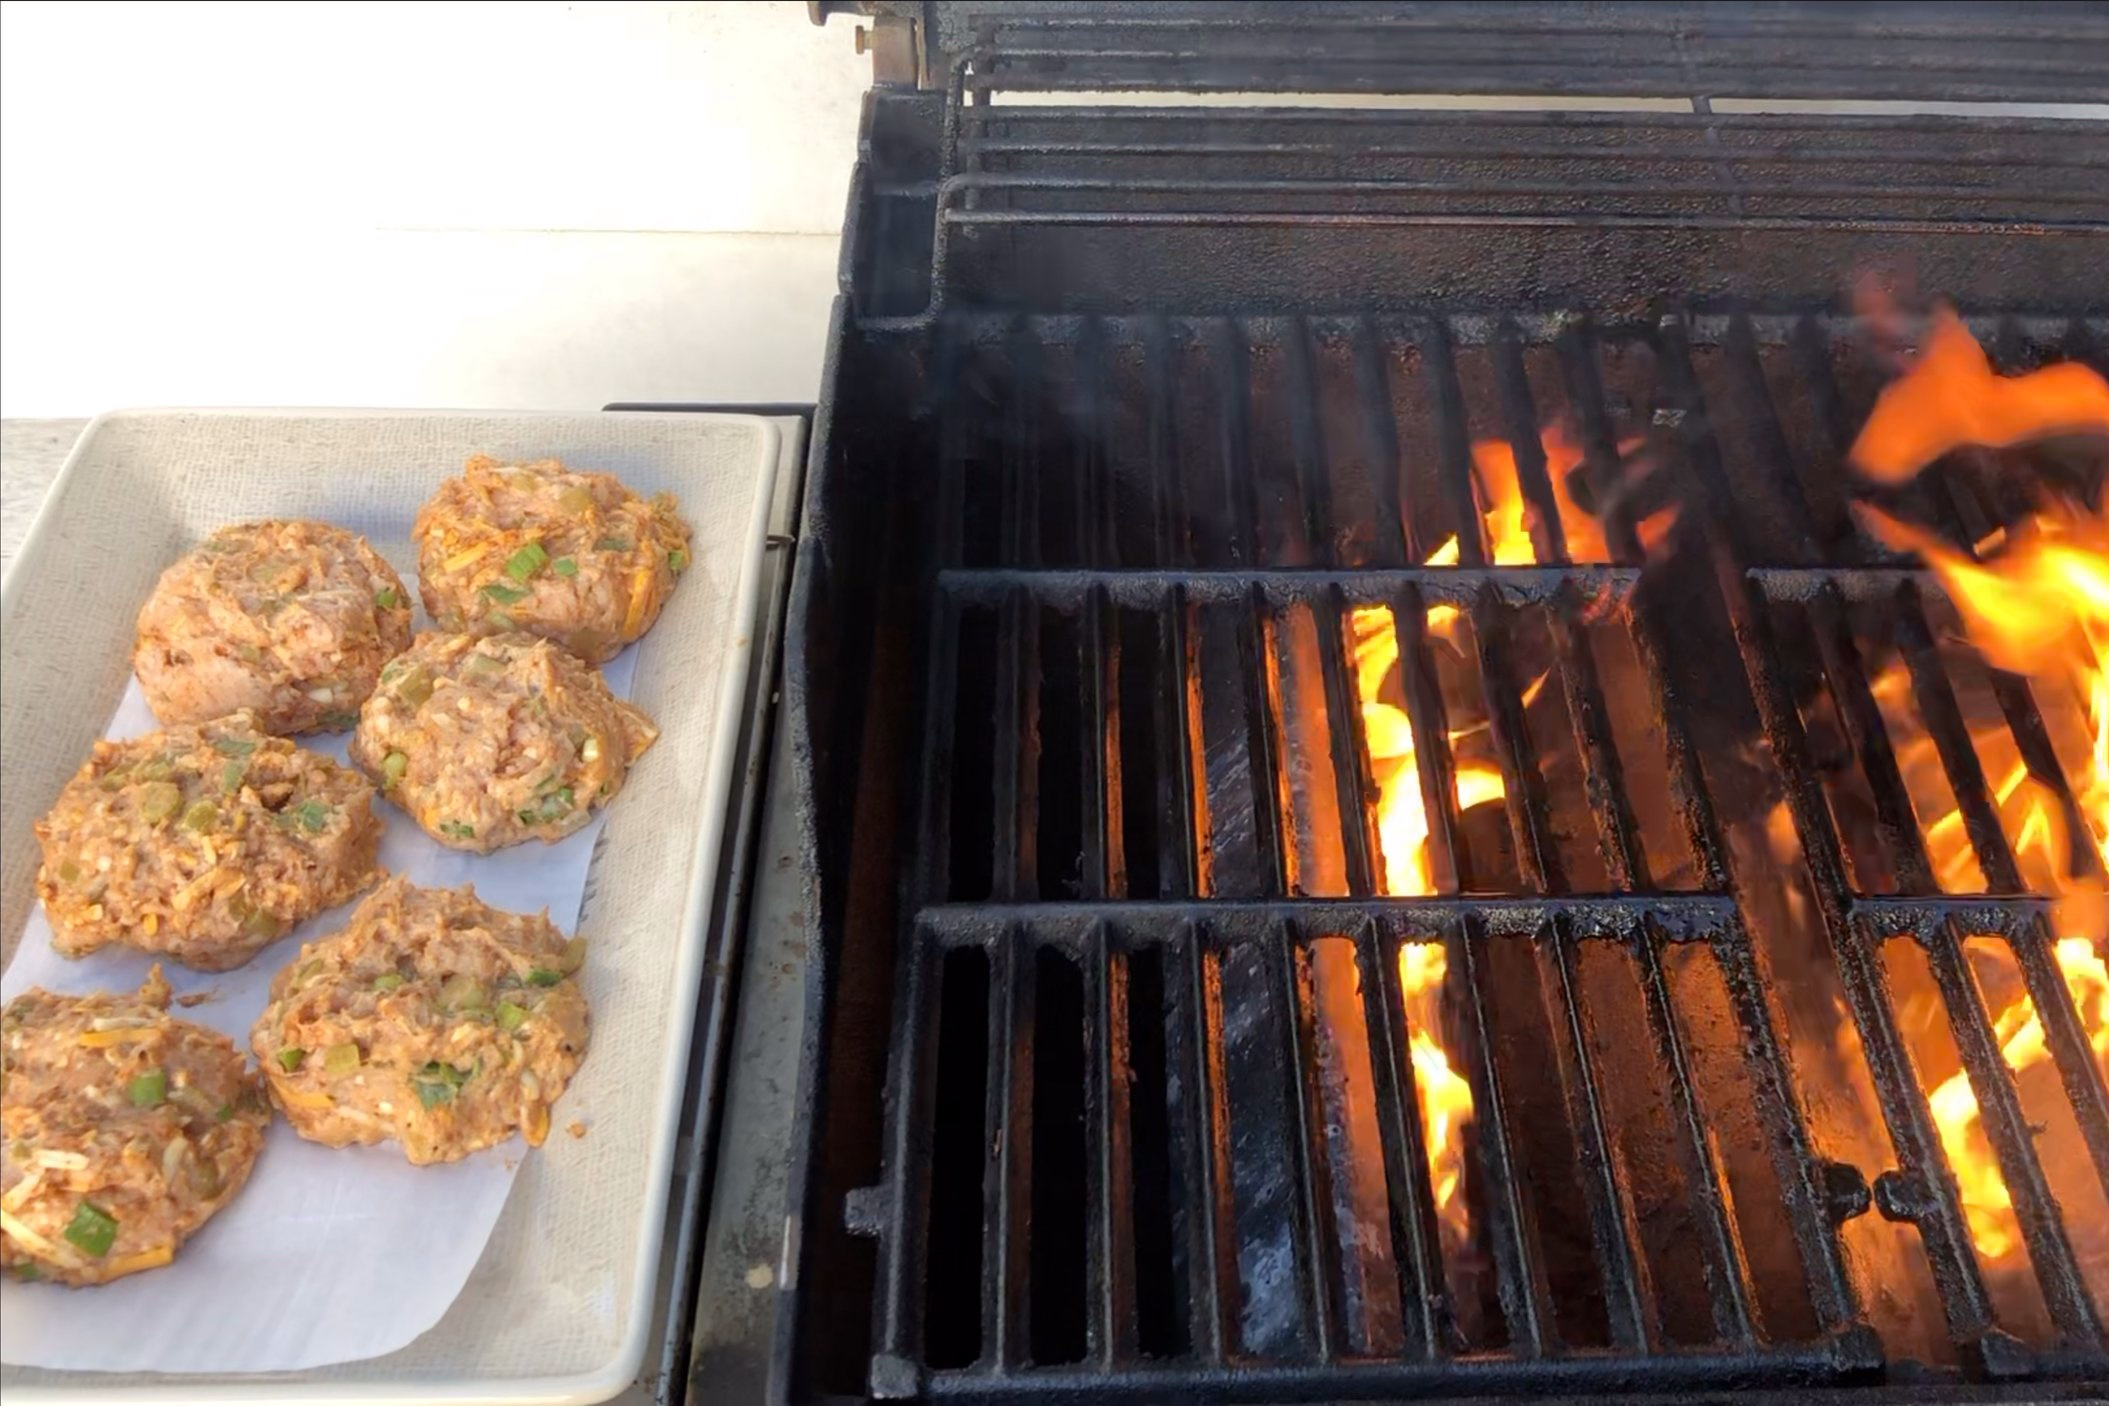 5. Pre-heat your outdoor grill to 400 degrees. -